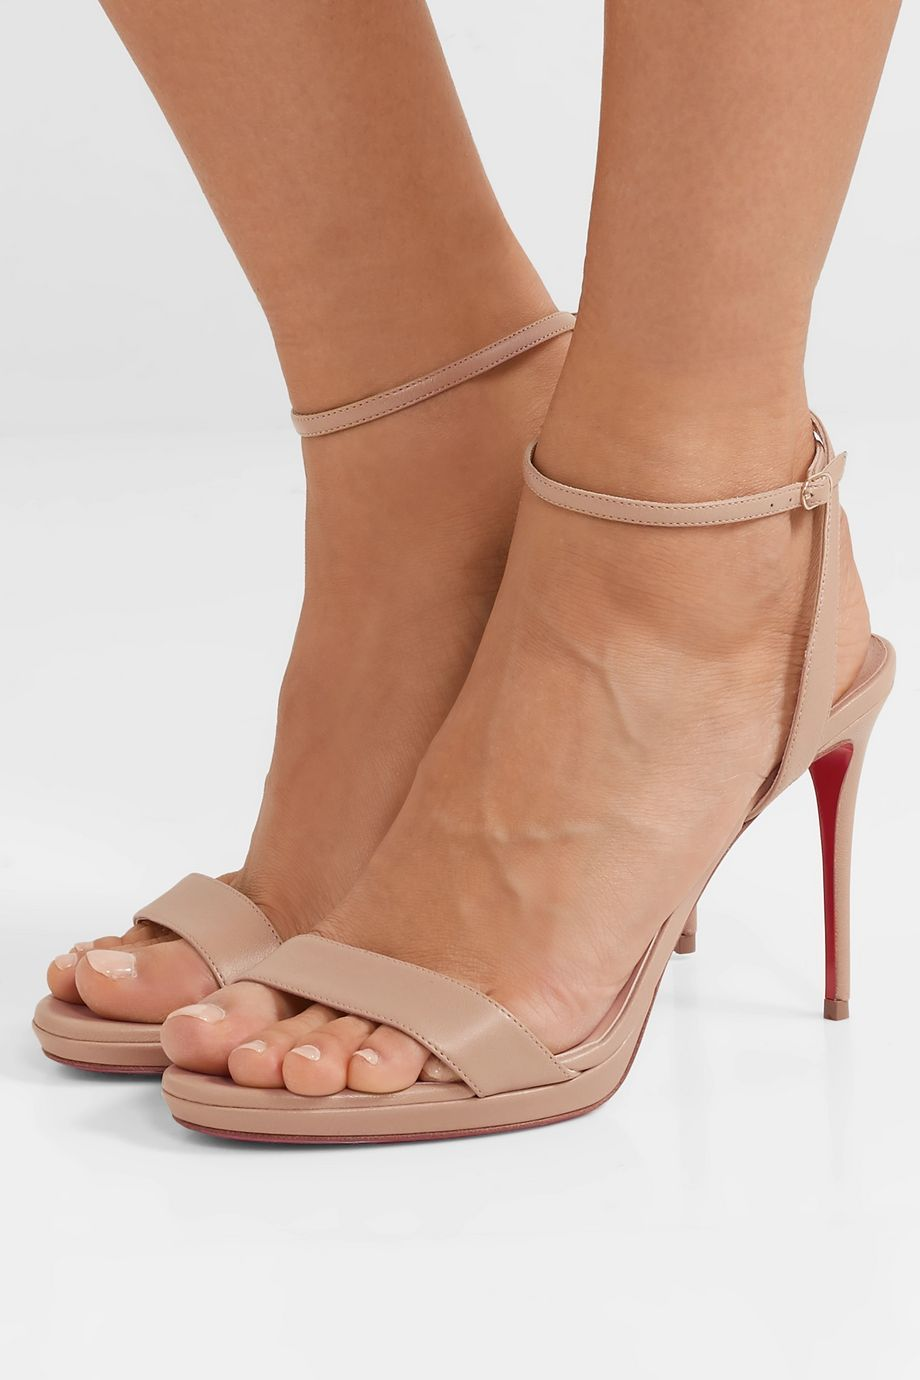 Christian Louboutin Loubi Queen 100 leather sandals